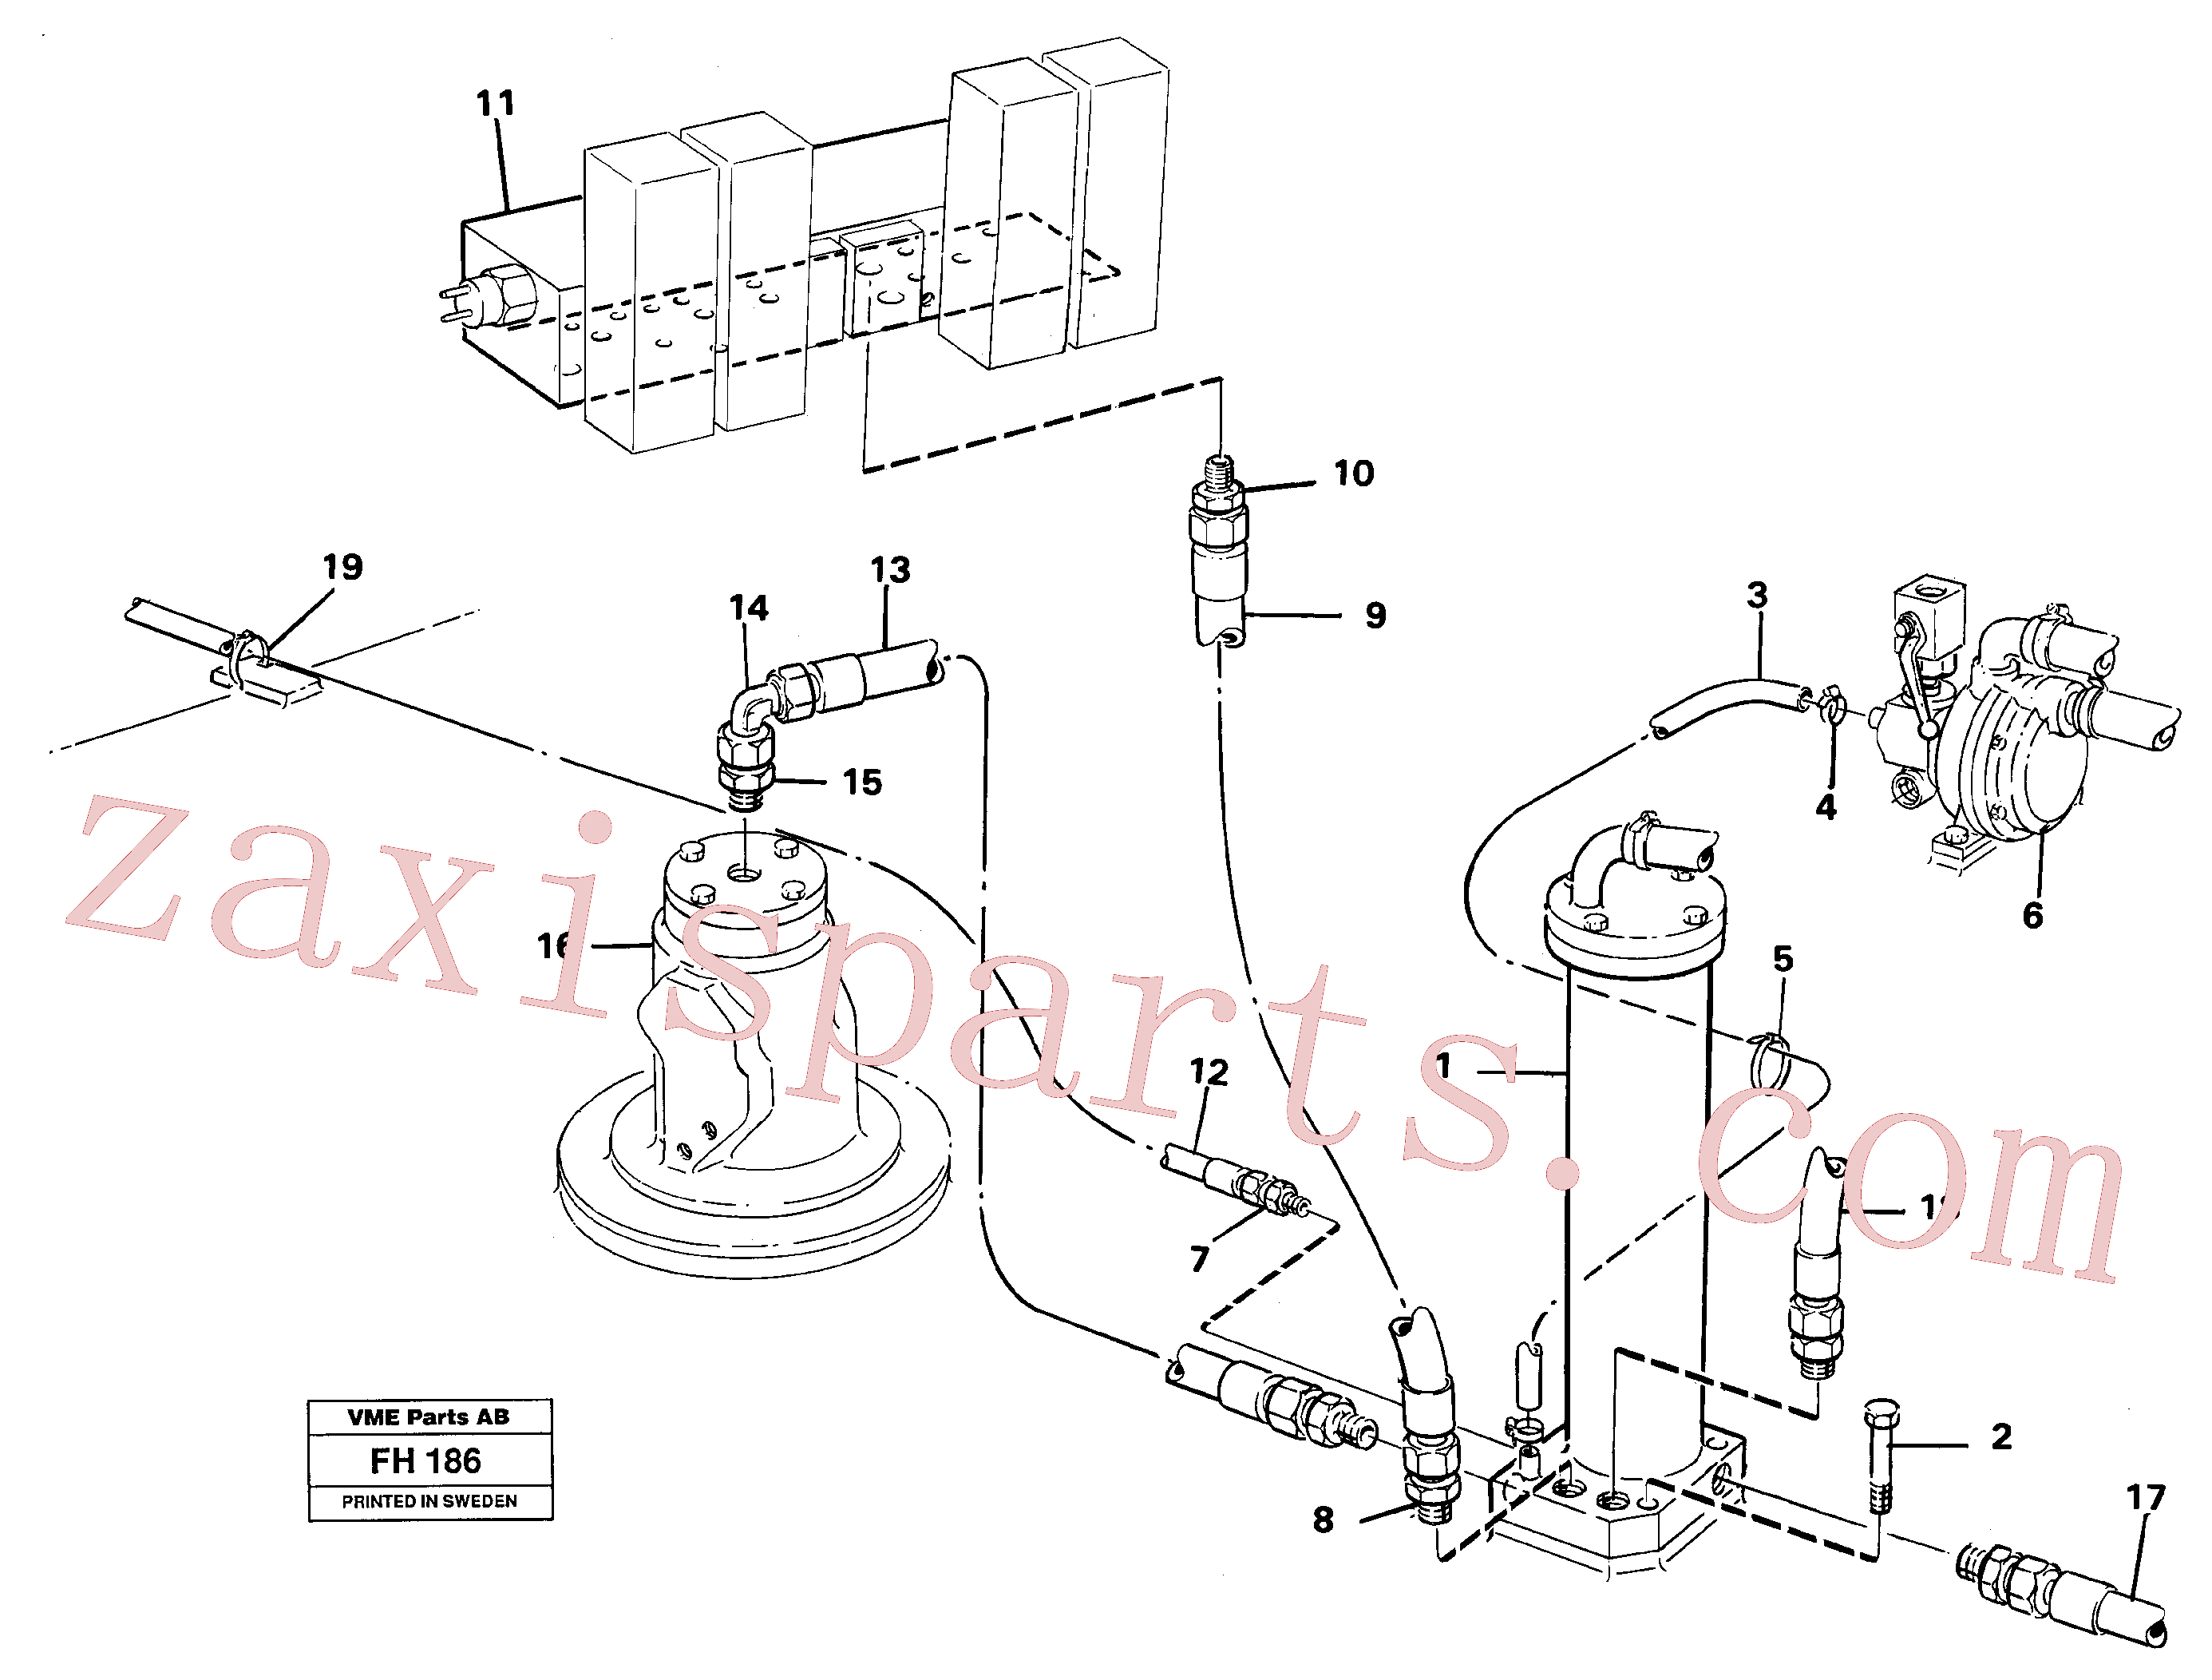 VOE14051492 for Volvo Leak oil filter, with connections(FH186 assembly)